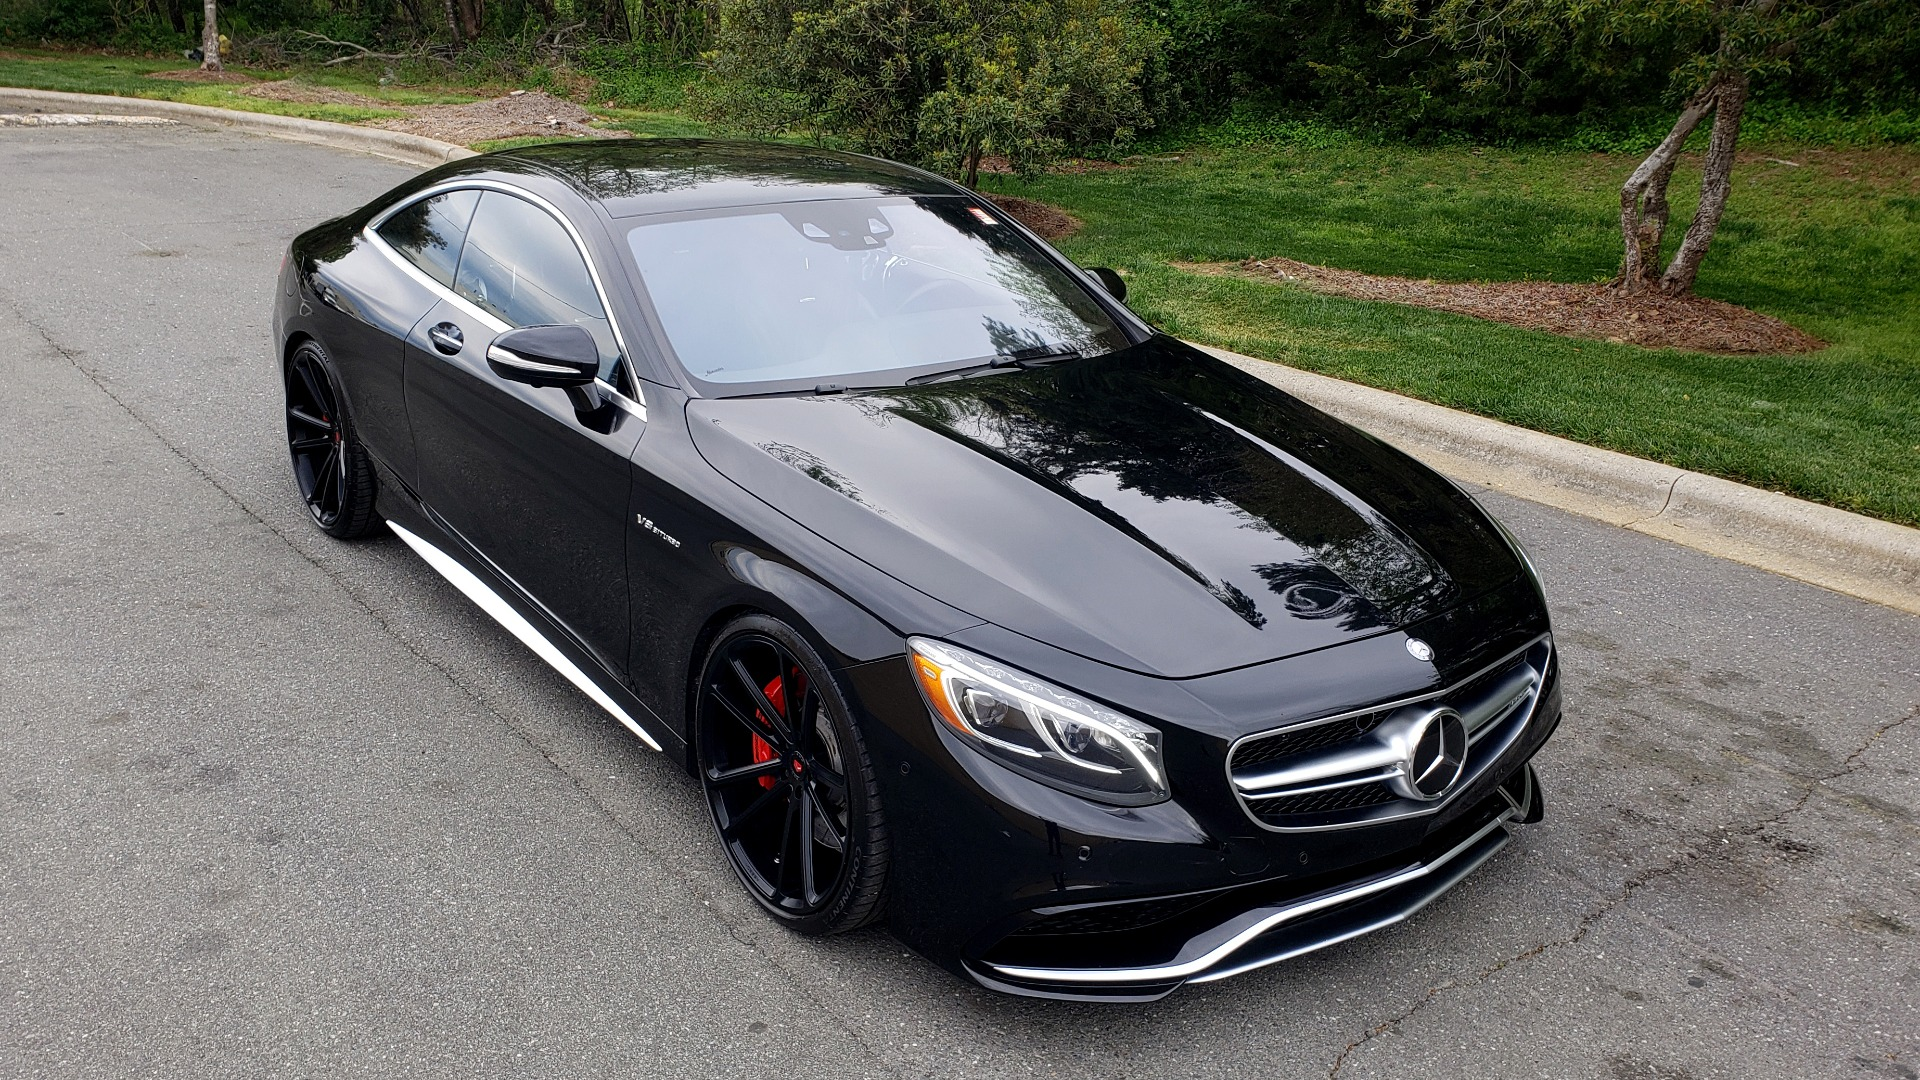 Used 2015 Mercedes-Benz S-CLASS S 63 AMG 4MATIC / DRVR ASST / NIGHT VIEW ASST PLUS / MAGIC SKY for sale Sold at Formula Imports in Charlotte NC 28227 14